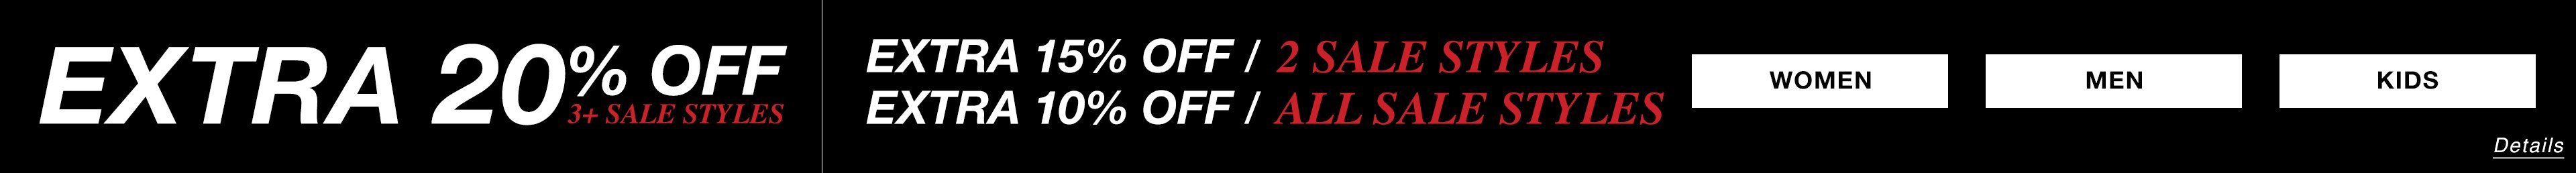 Extra 20% off when you buy 3 or more sale styles